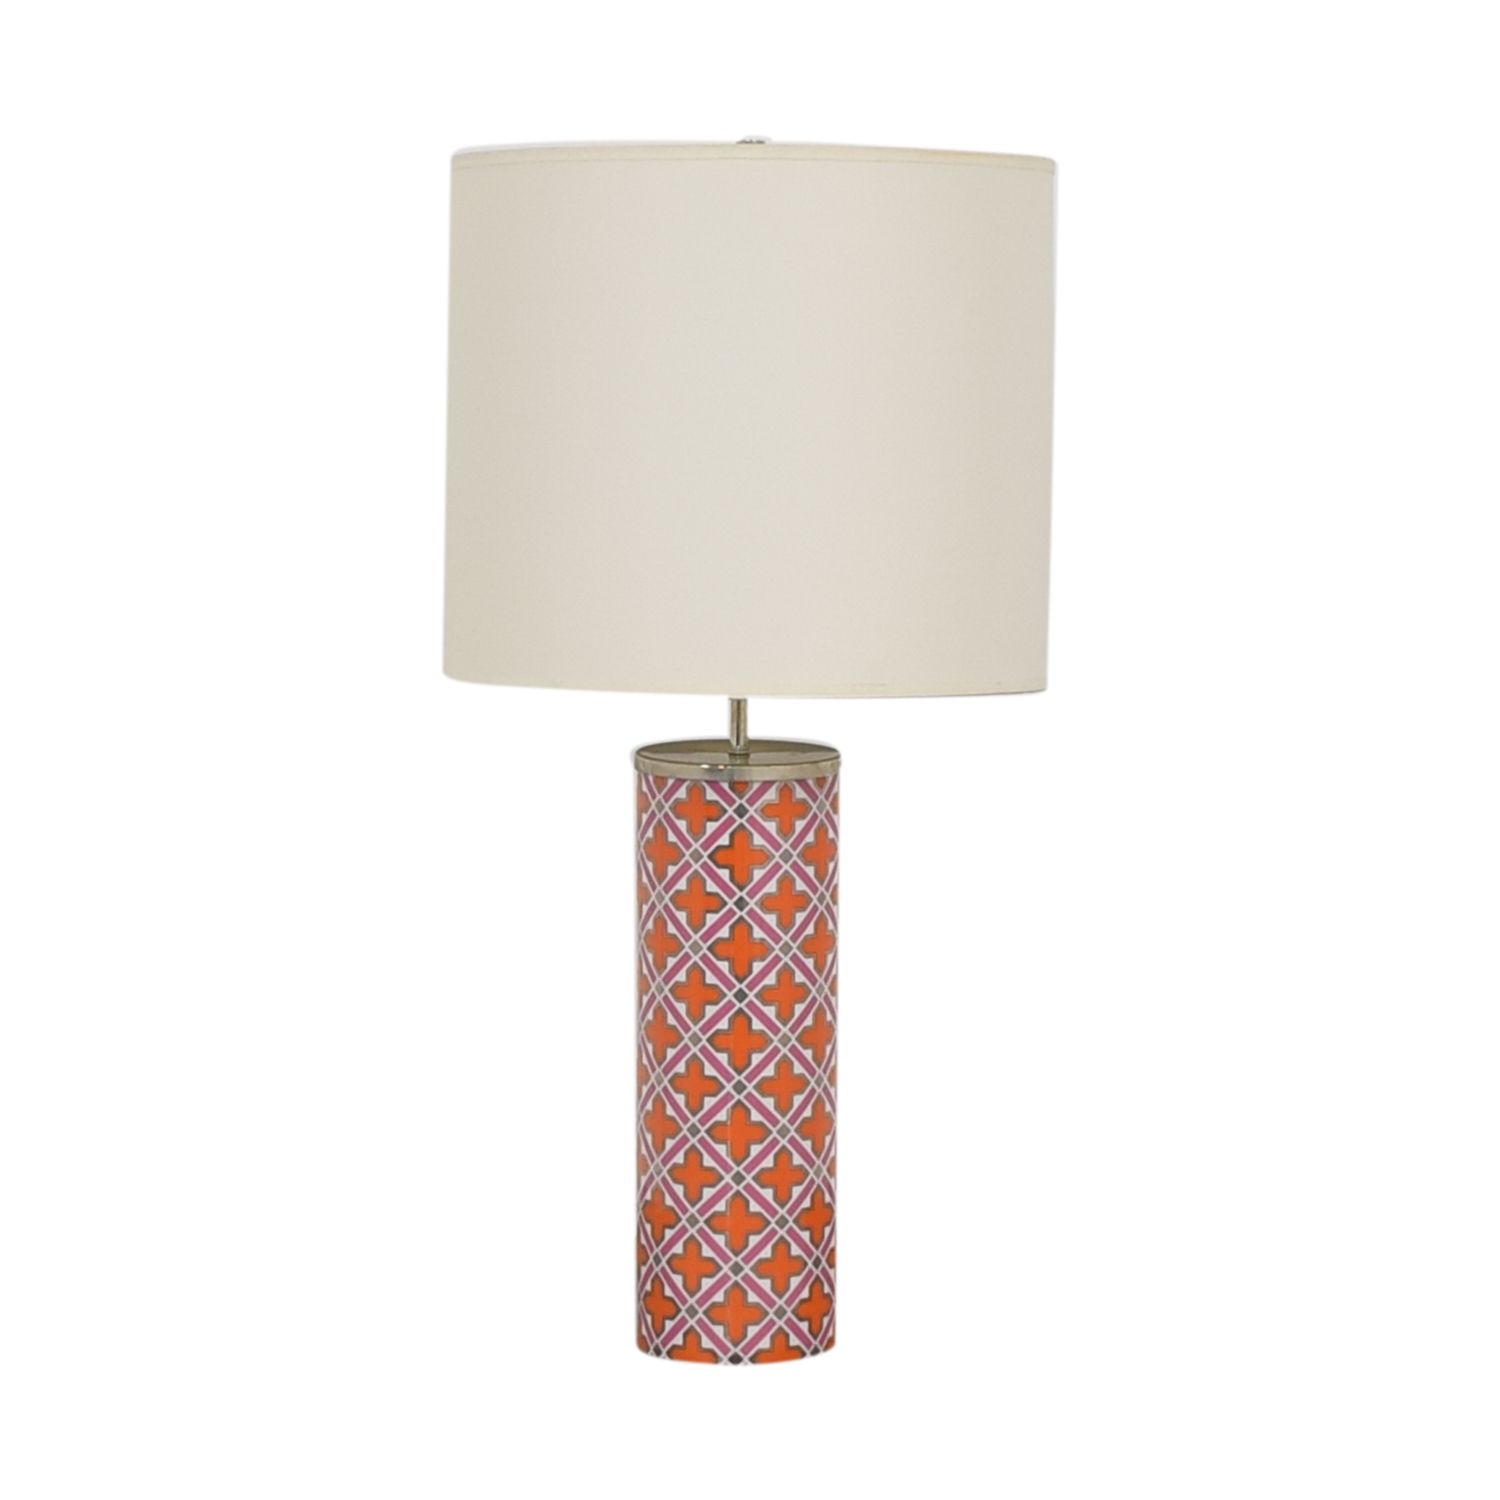 Jonathan Adler Lamp / Decor